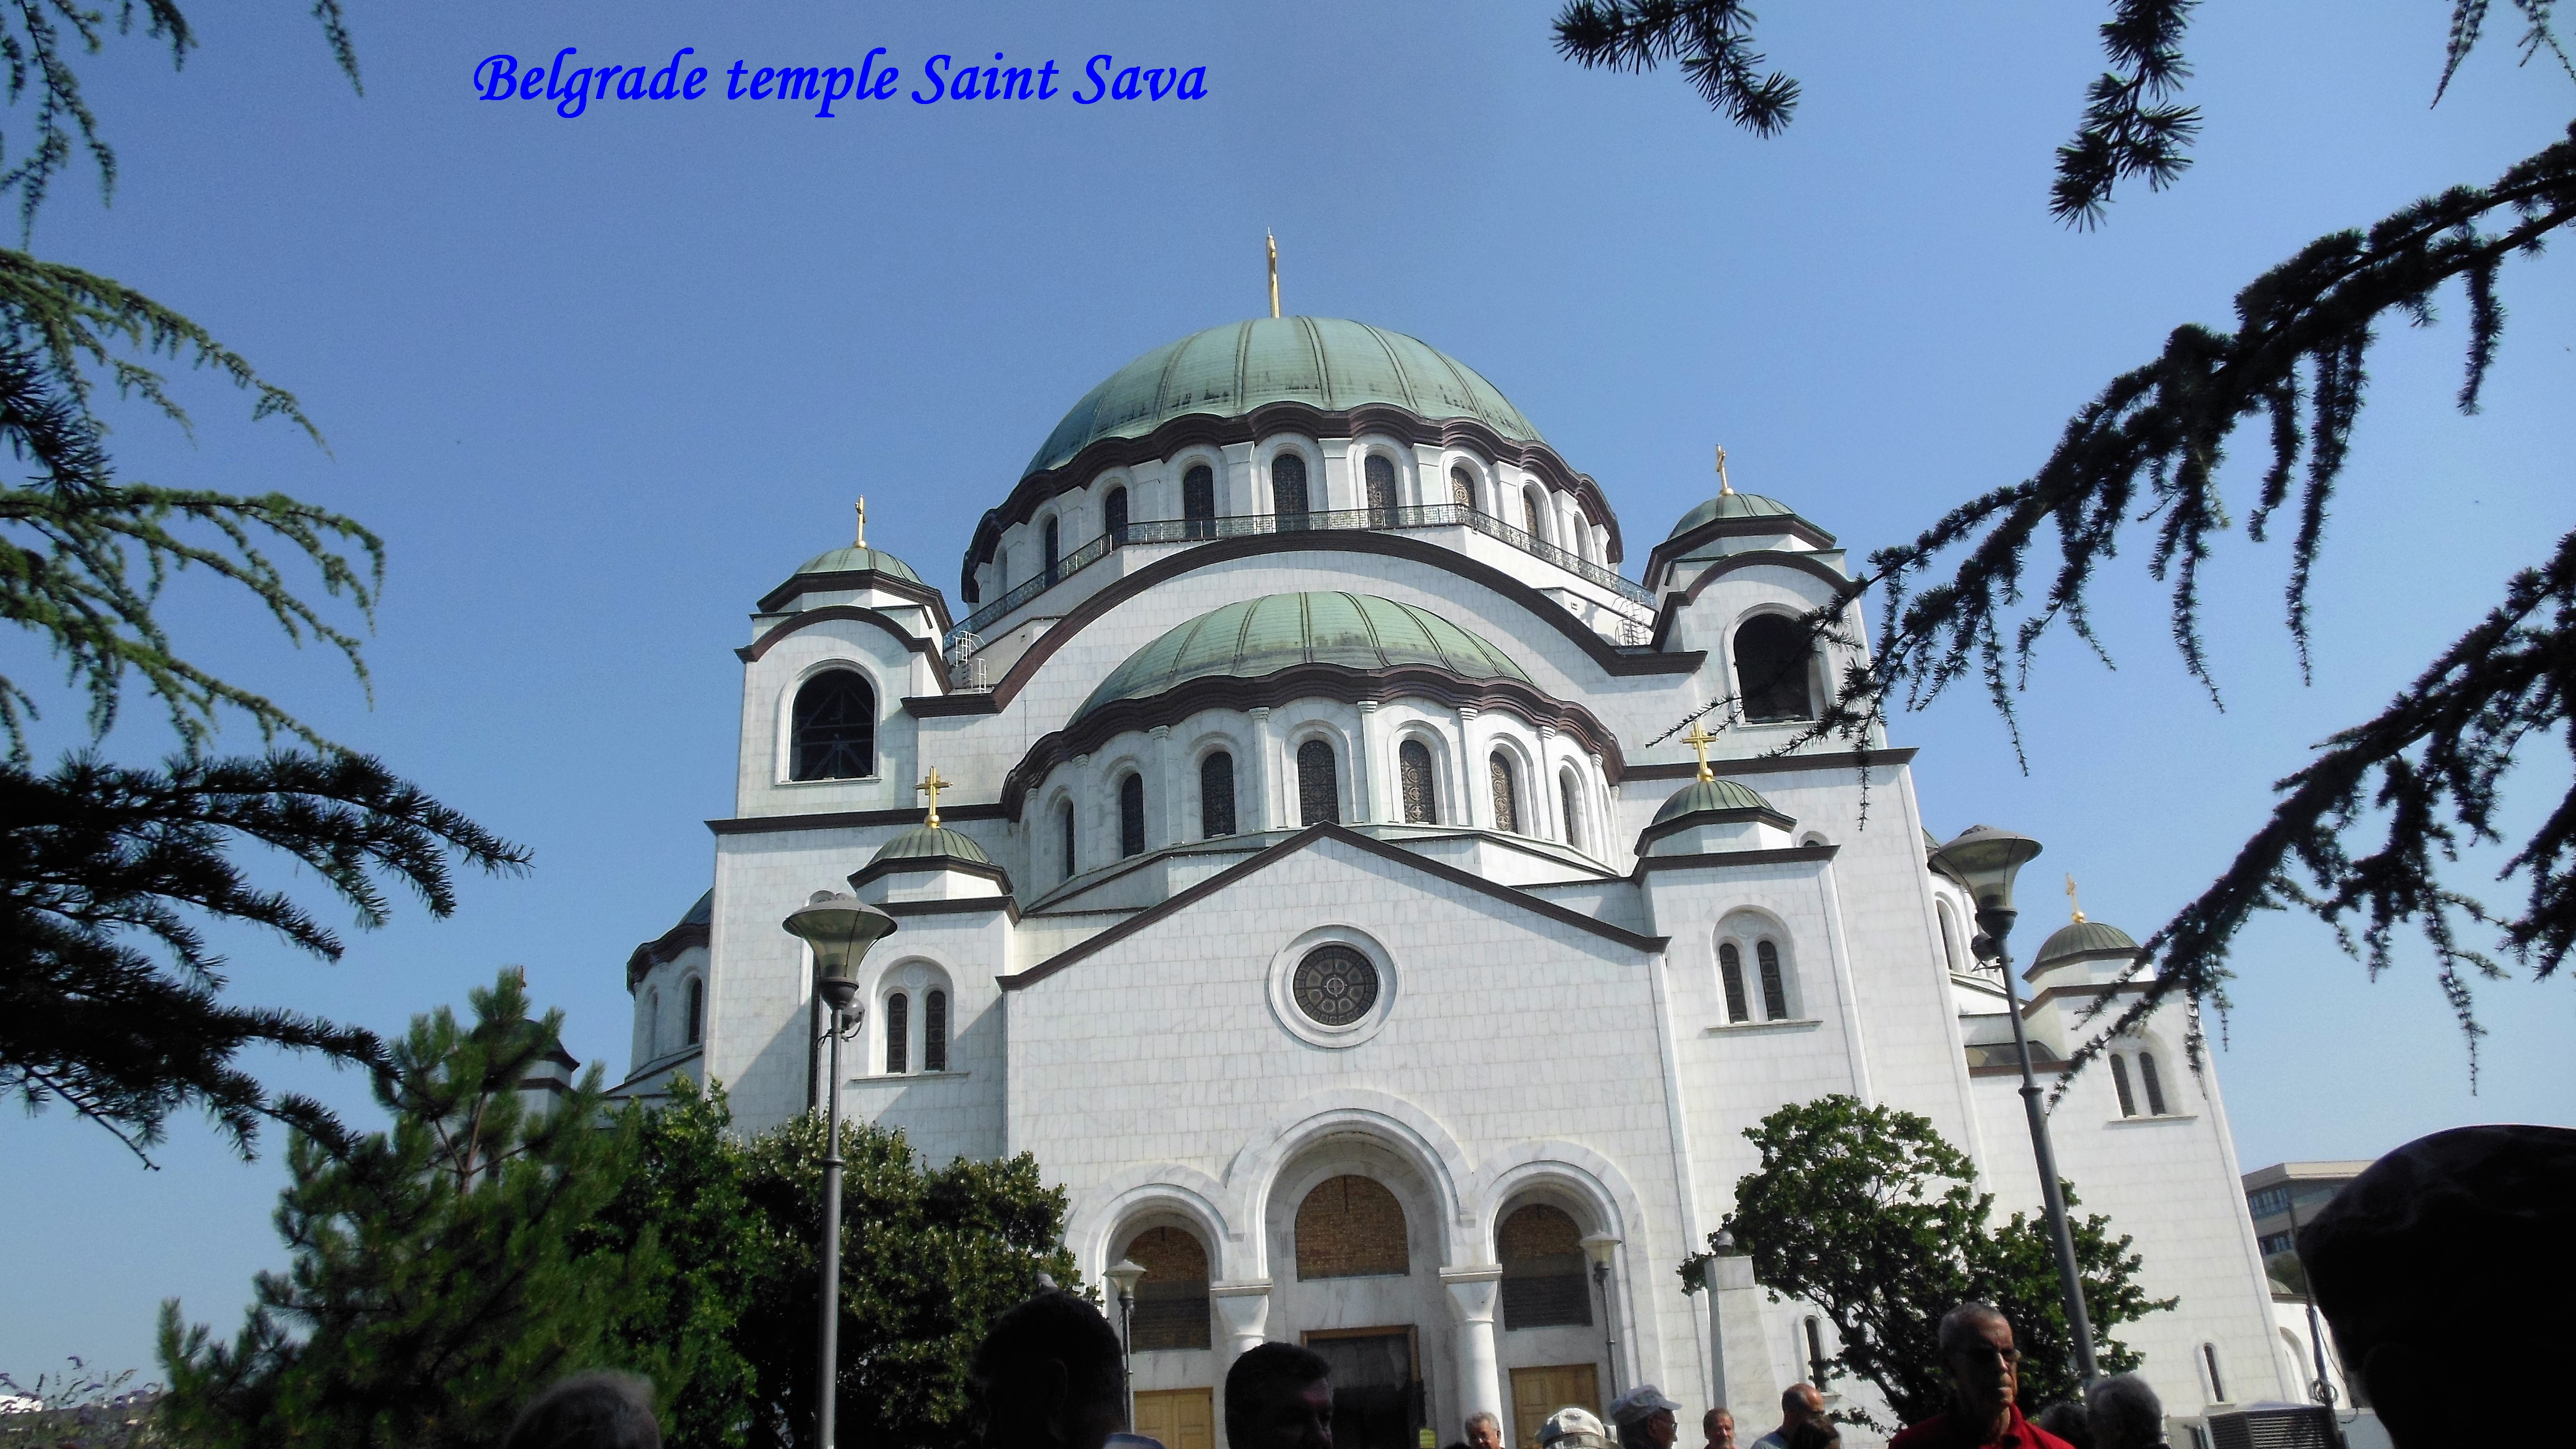 belgrade-temple-saint-sava